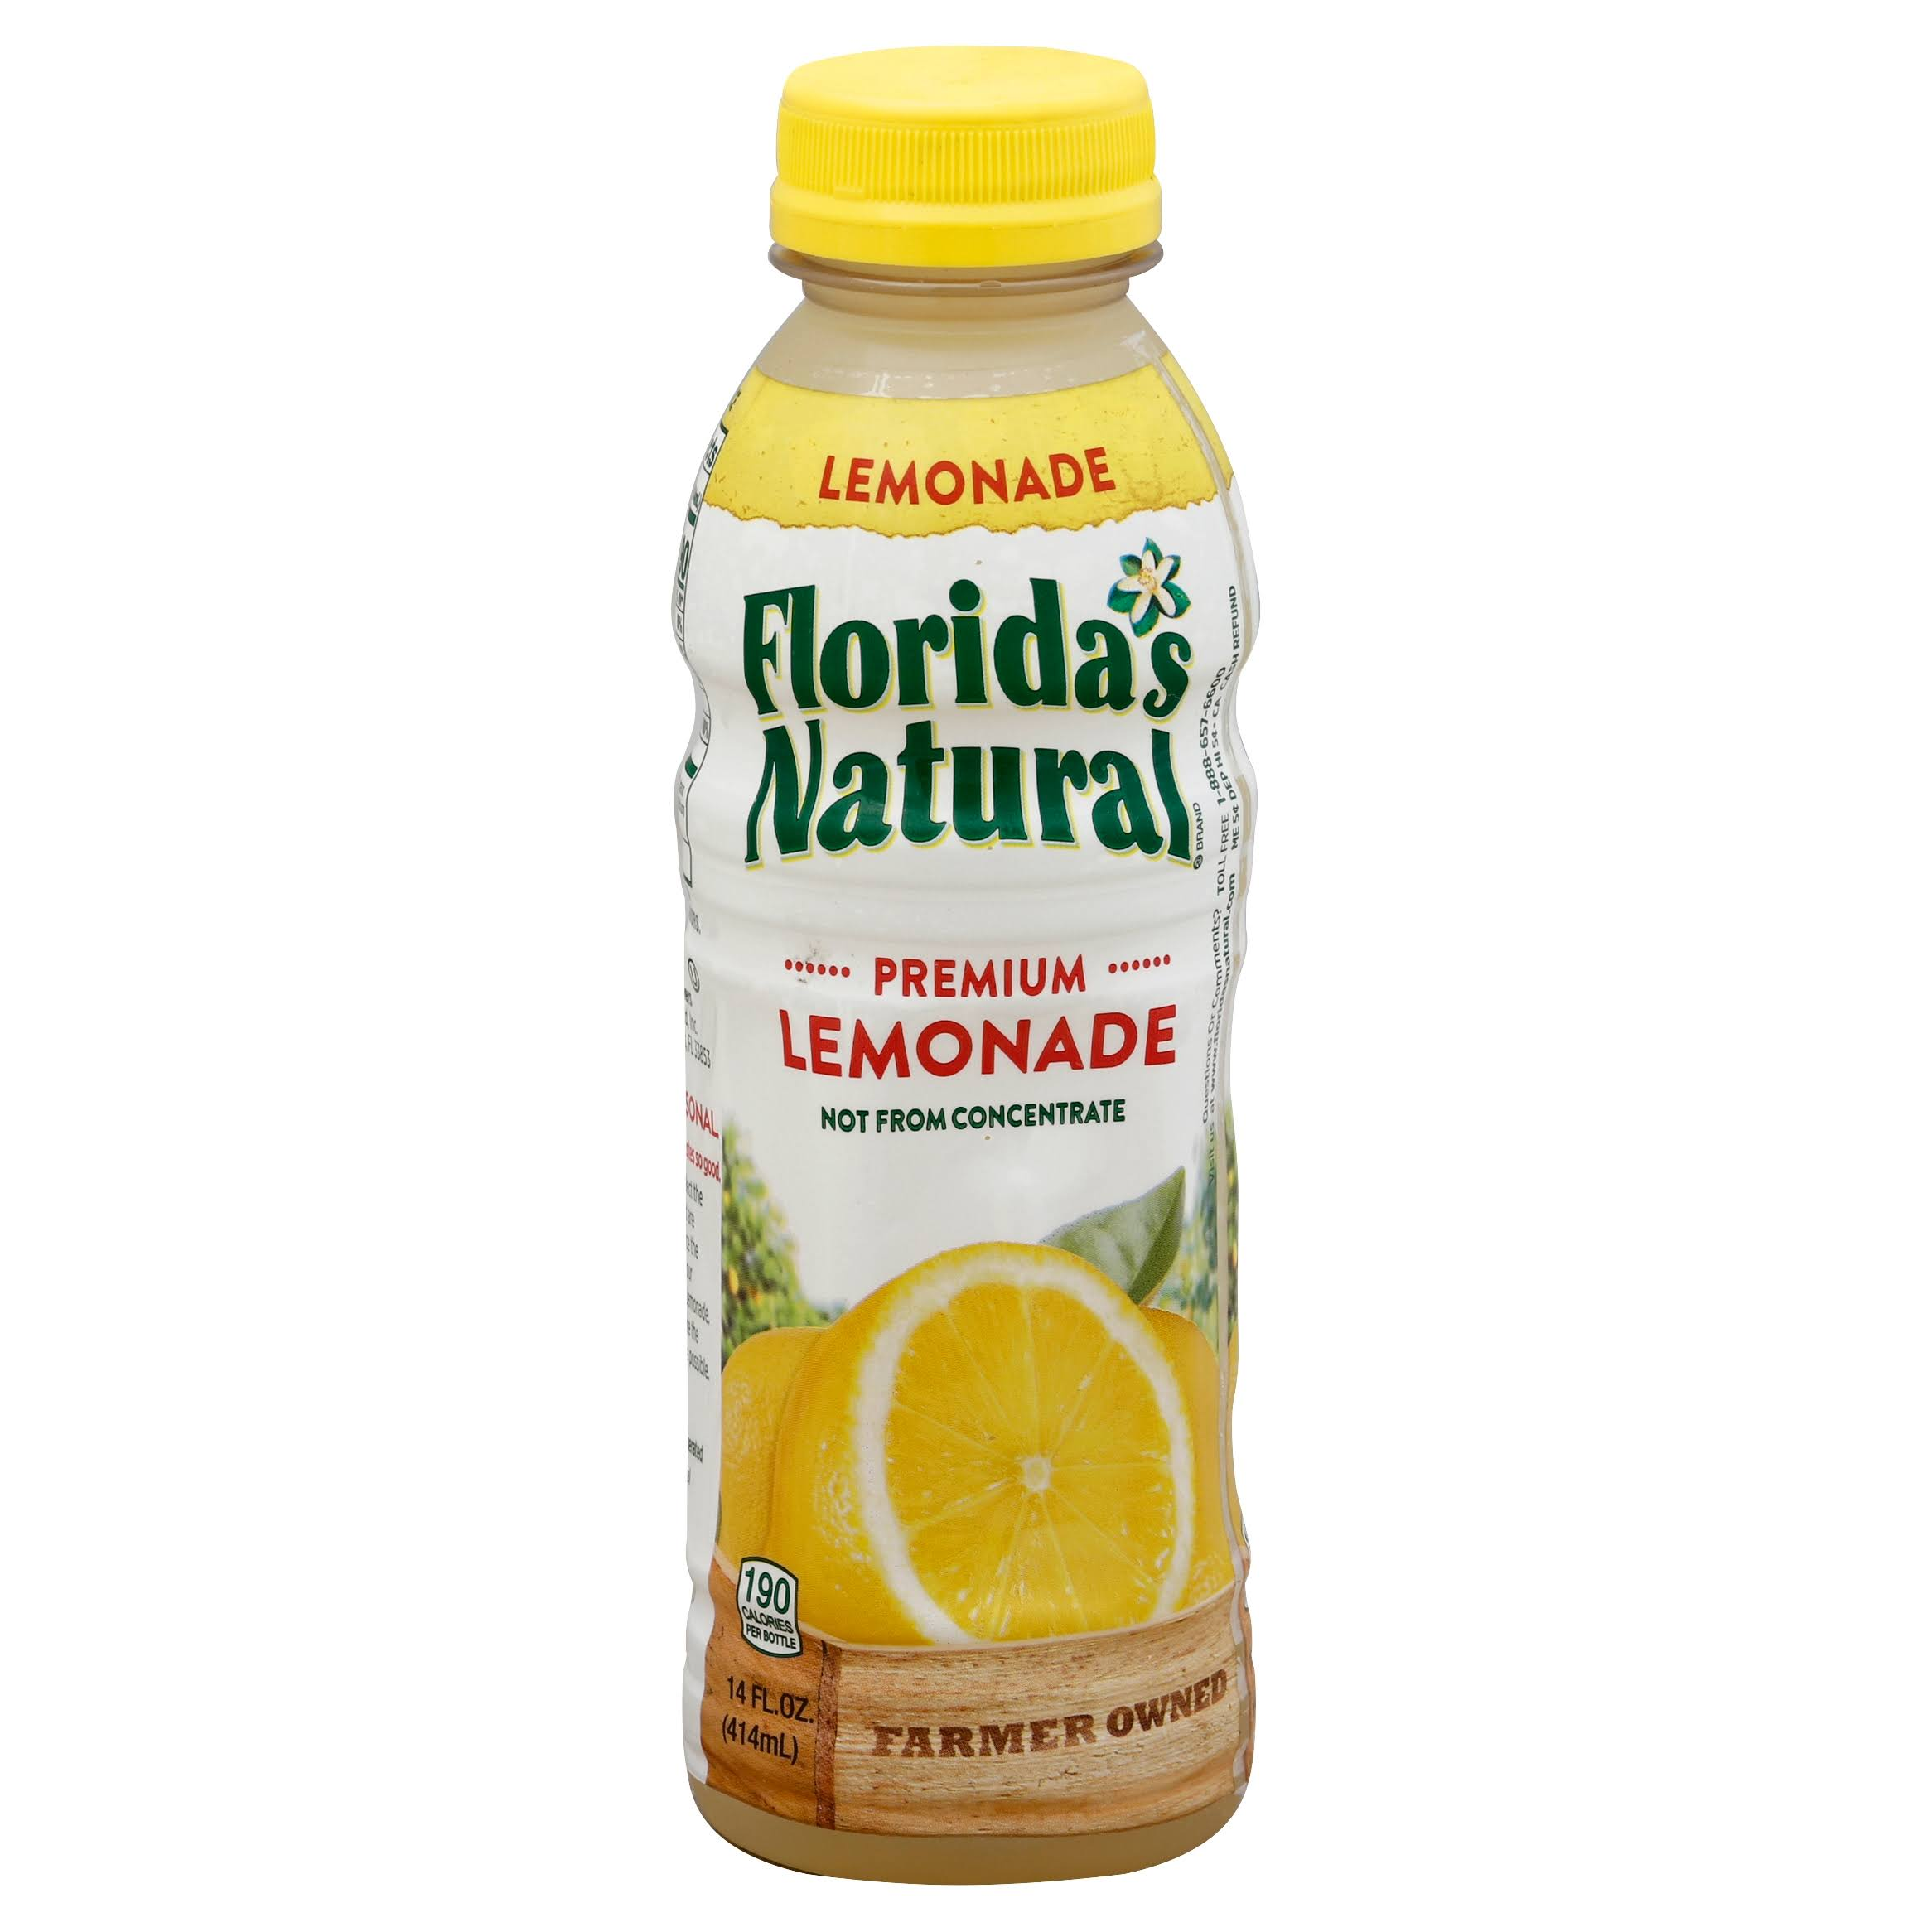 Floridas Natural Premium Lemonade - 414ml